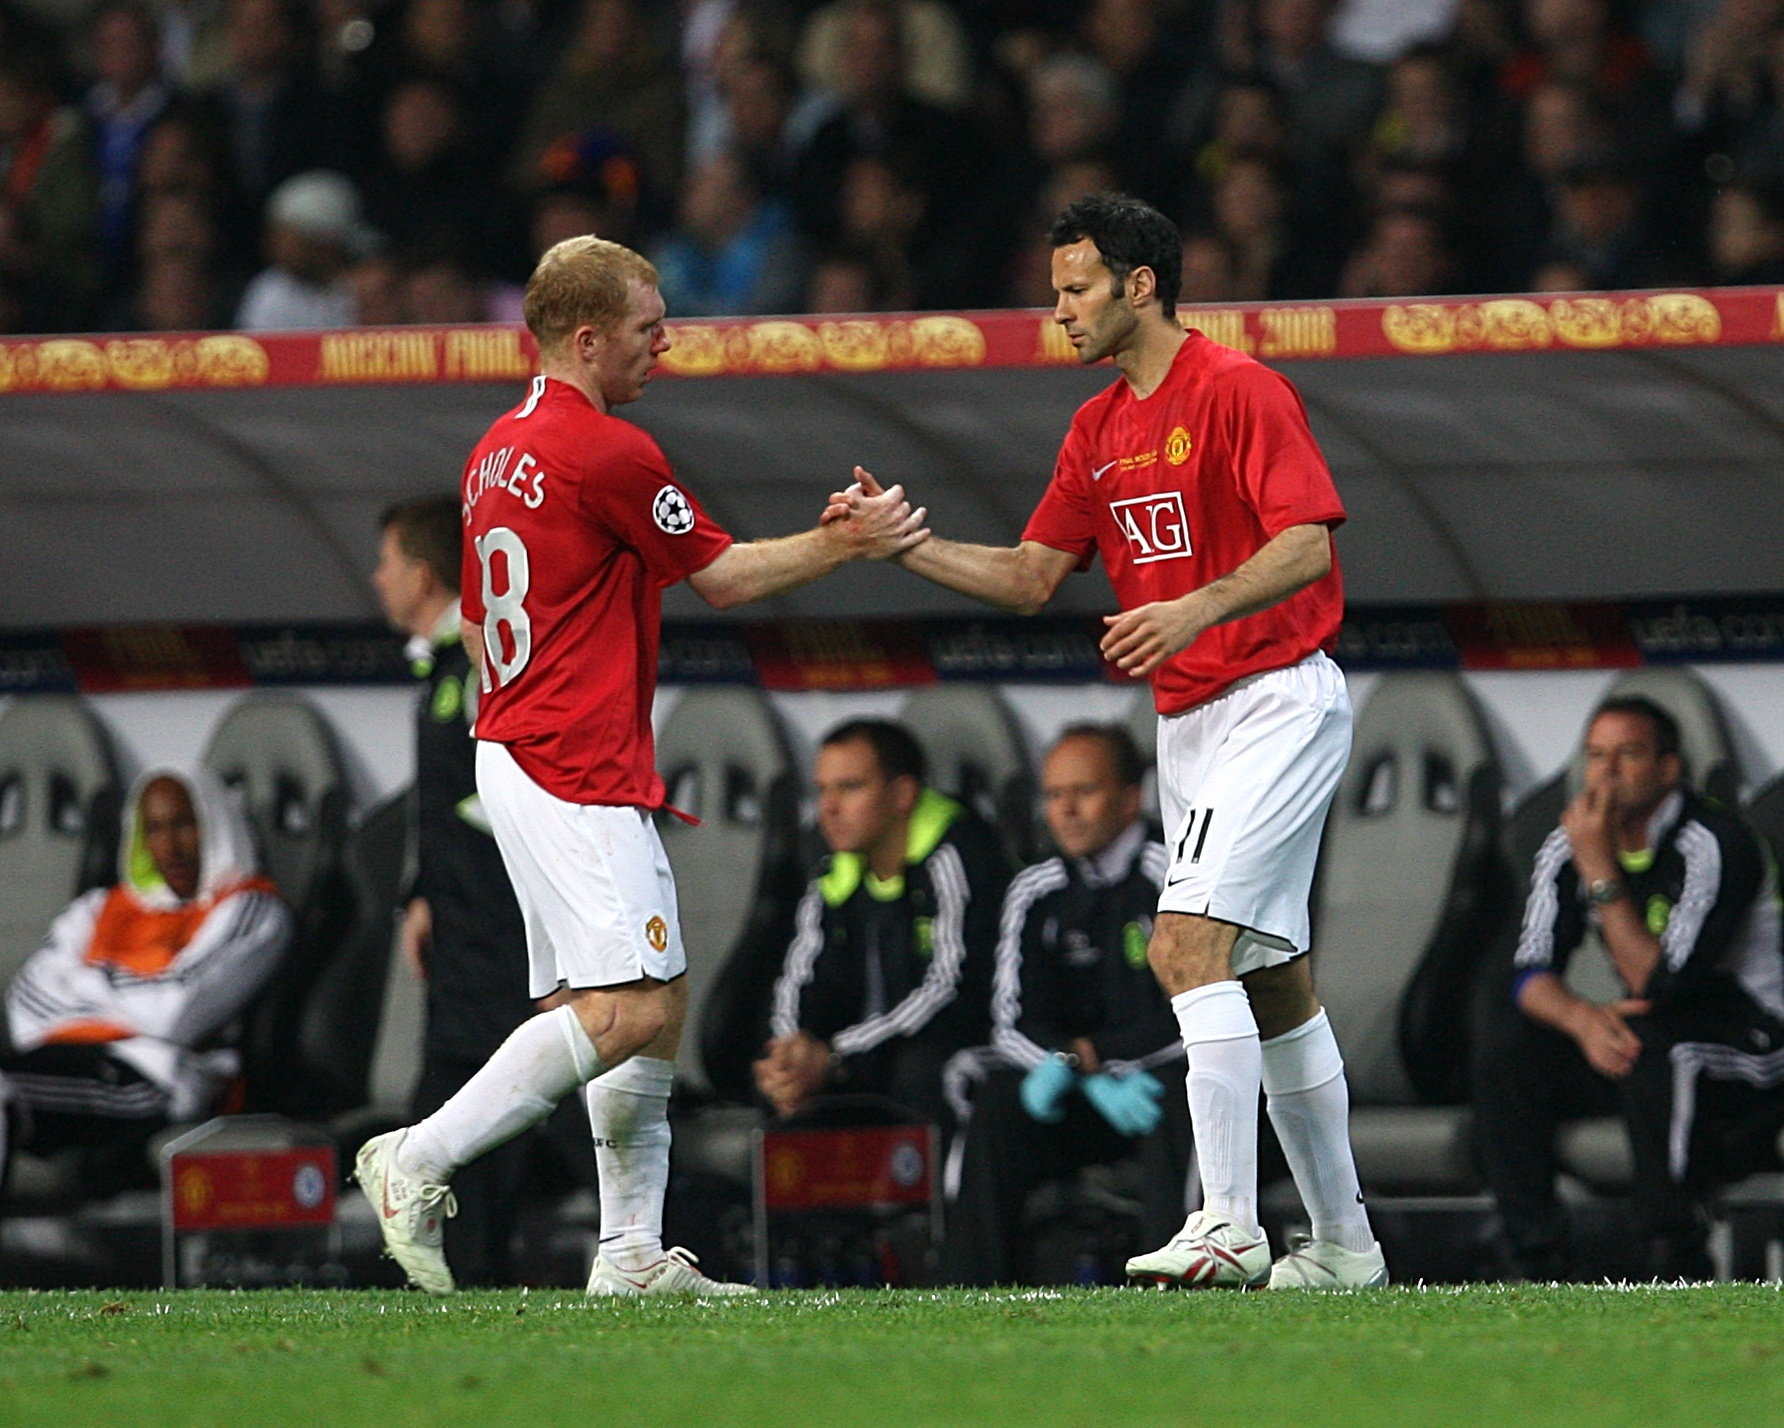 Manchester United's Paul Scholes and Ryan Giggs